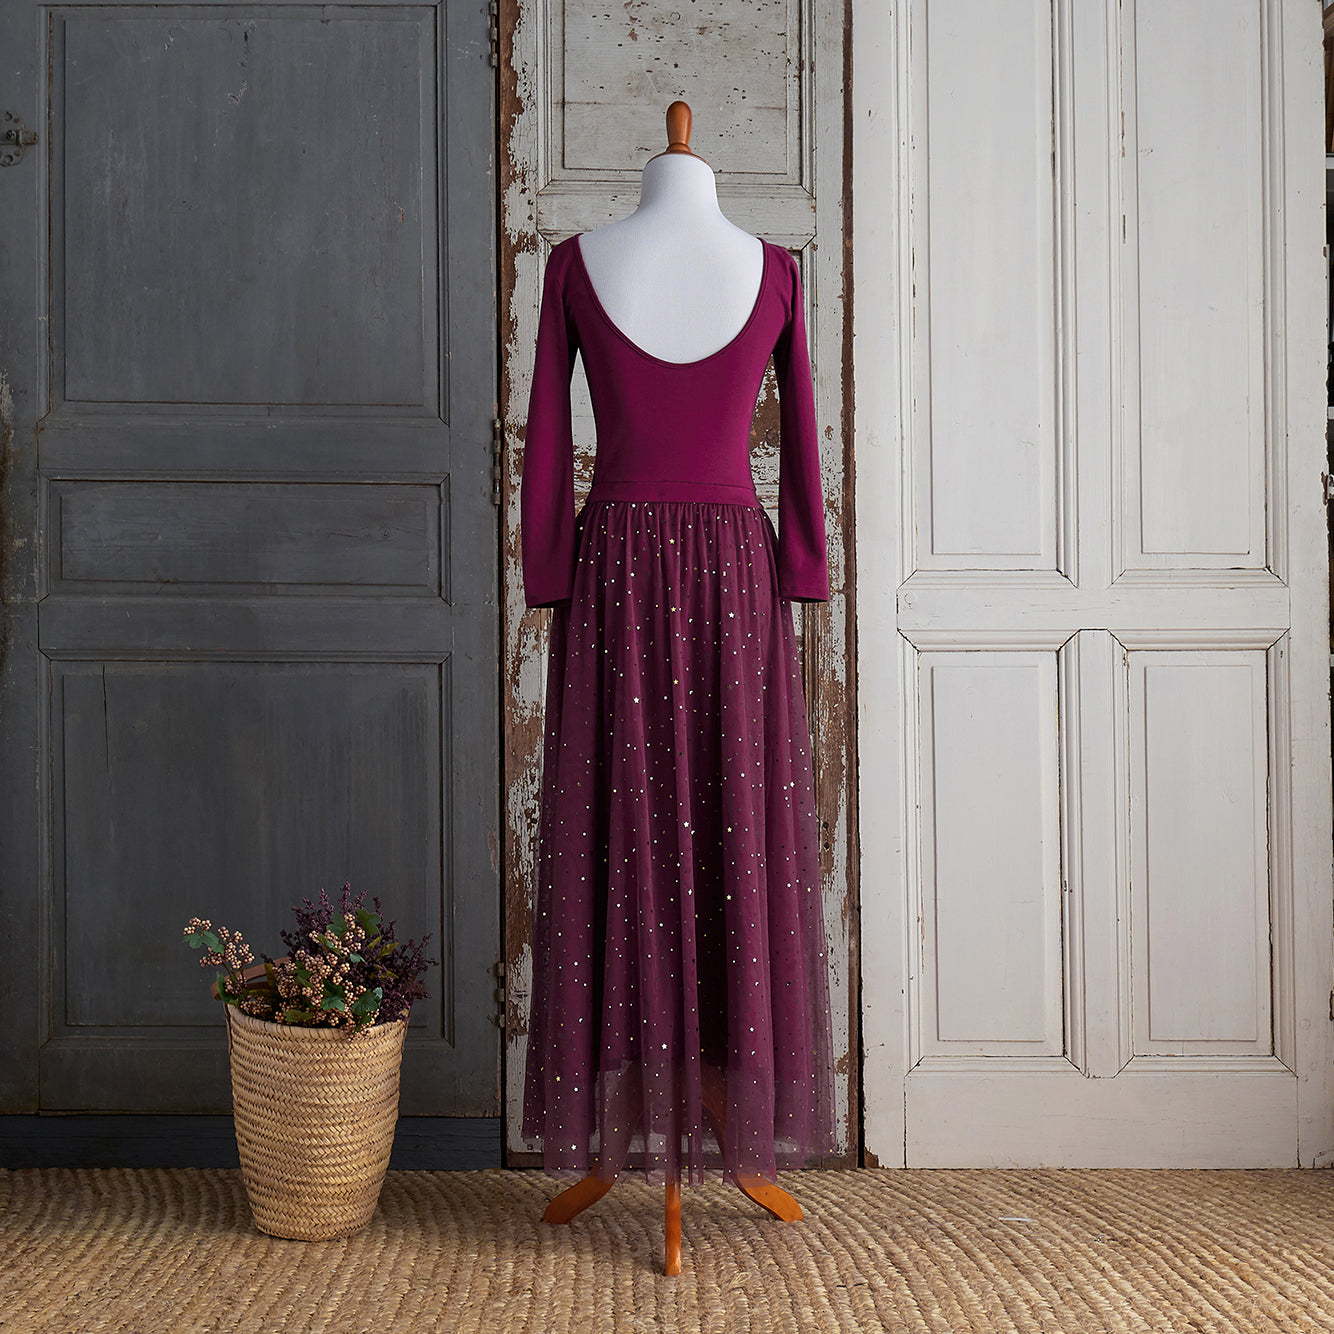 Ballerina Dress (Women) - Raspberry Jam (FINAL SALE)